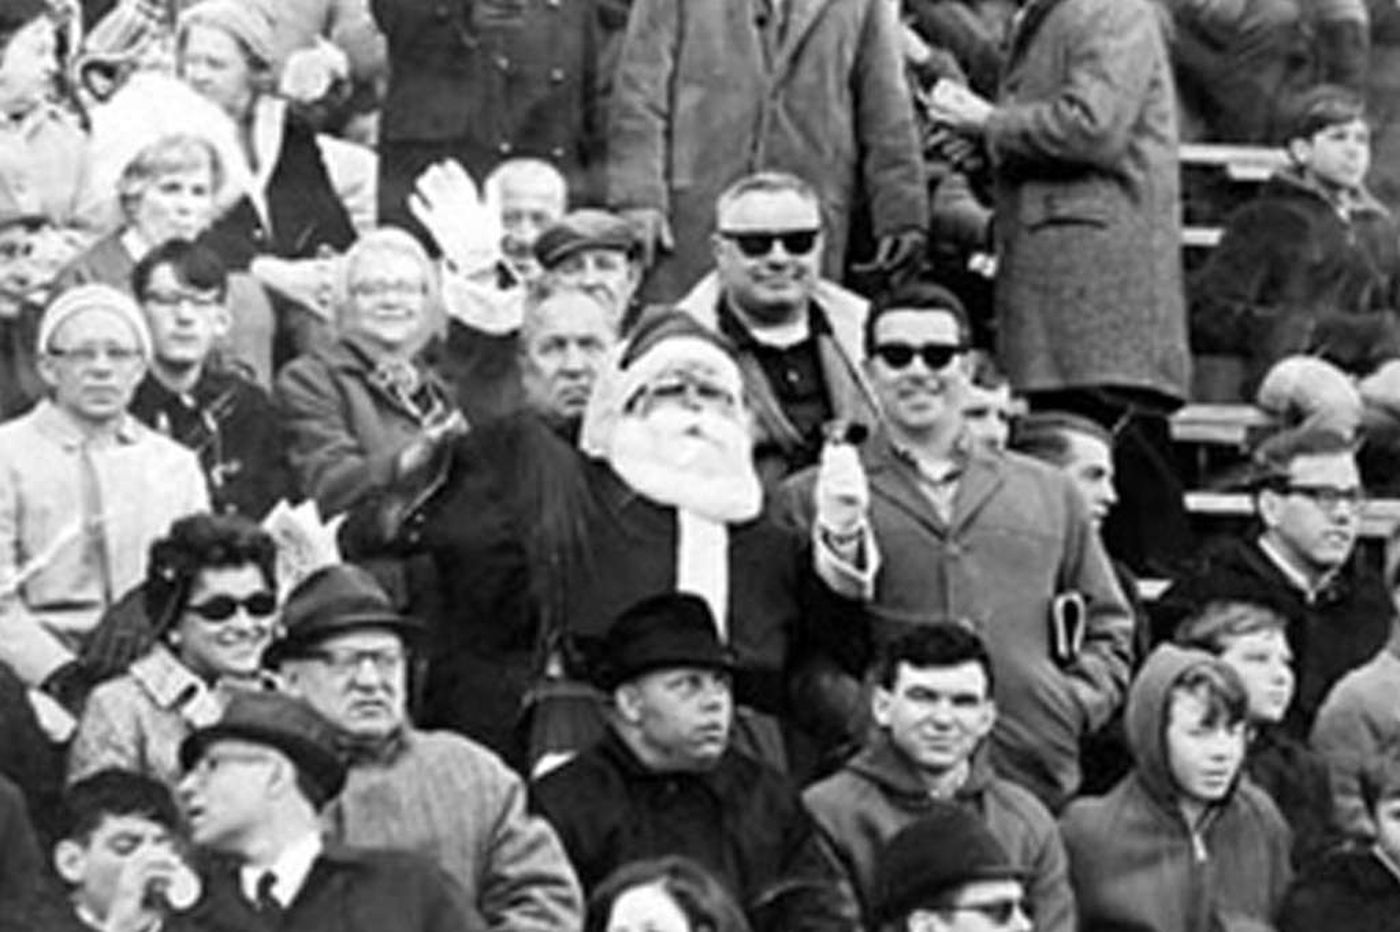 Frank Olivo, 66, substitute Santa hit with snowballs at Eagles game